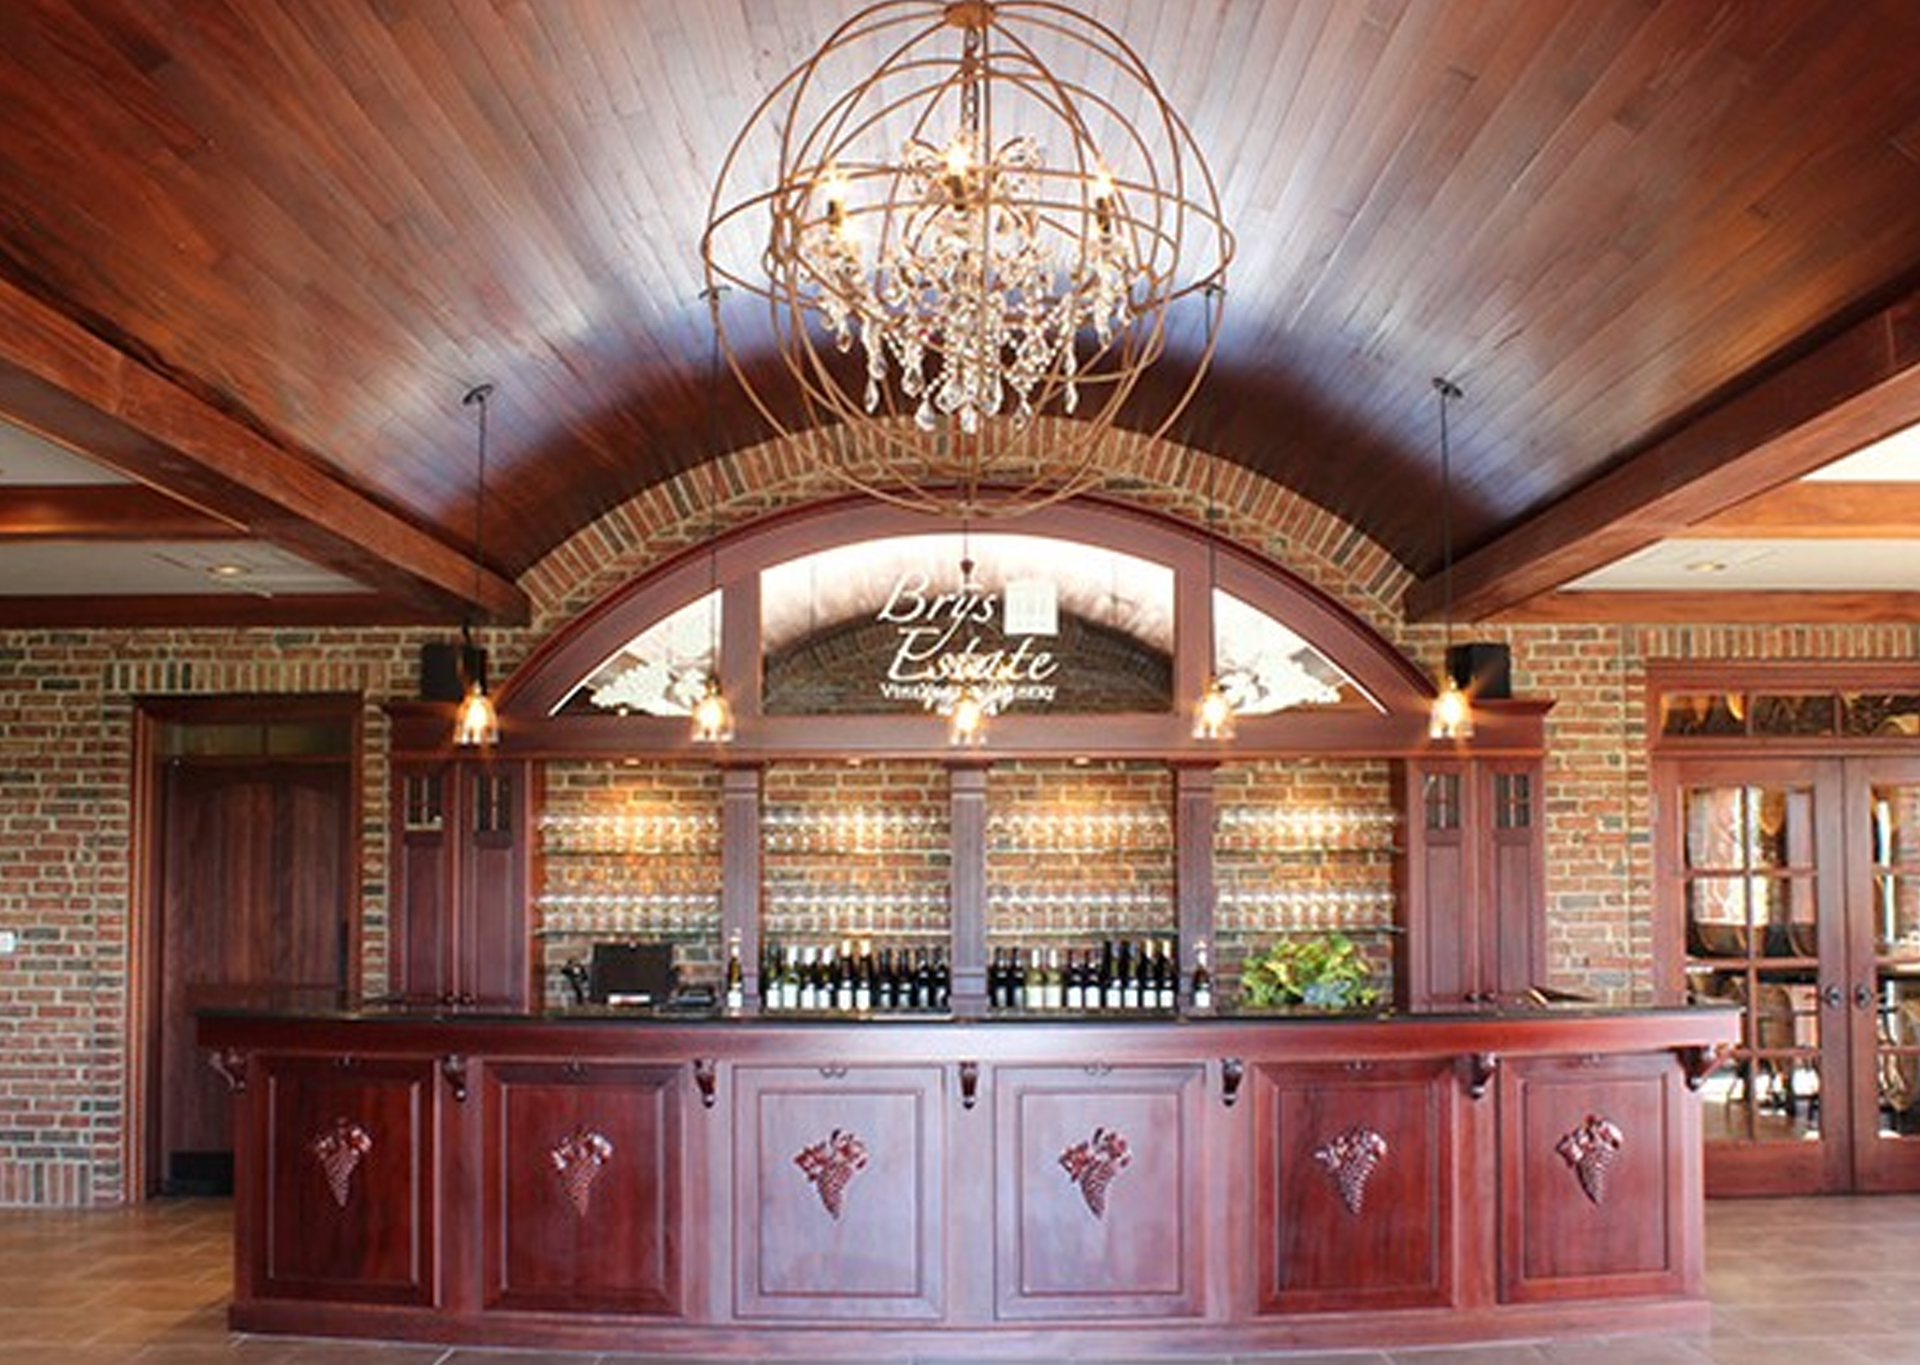 brys estate vineyard & winery tasting room